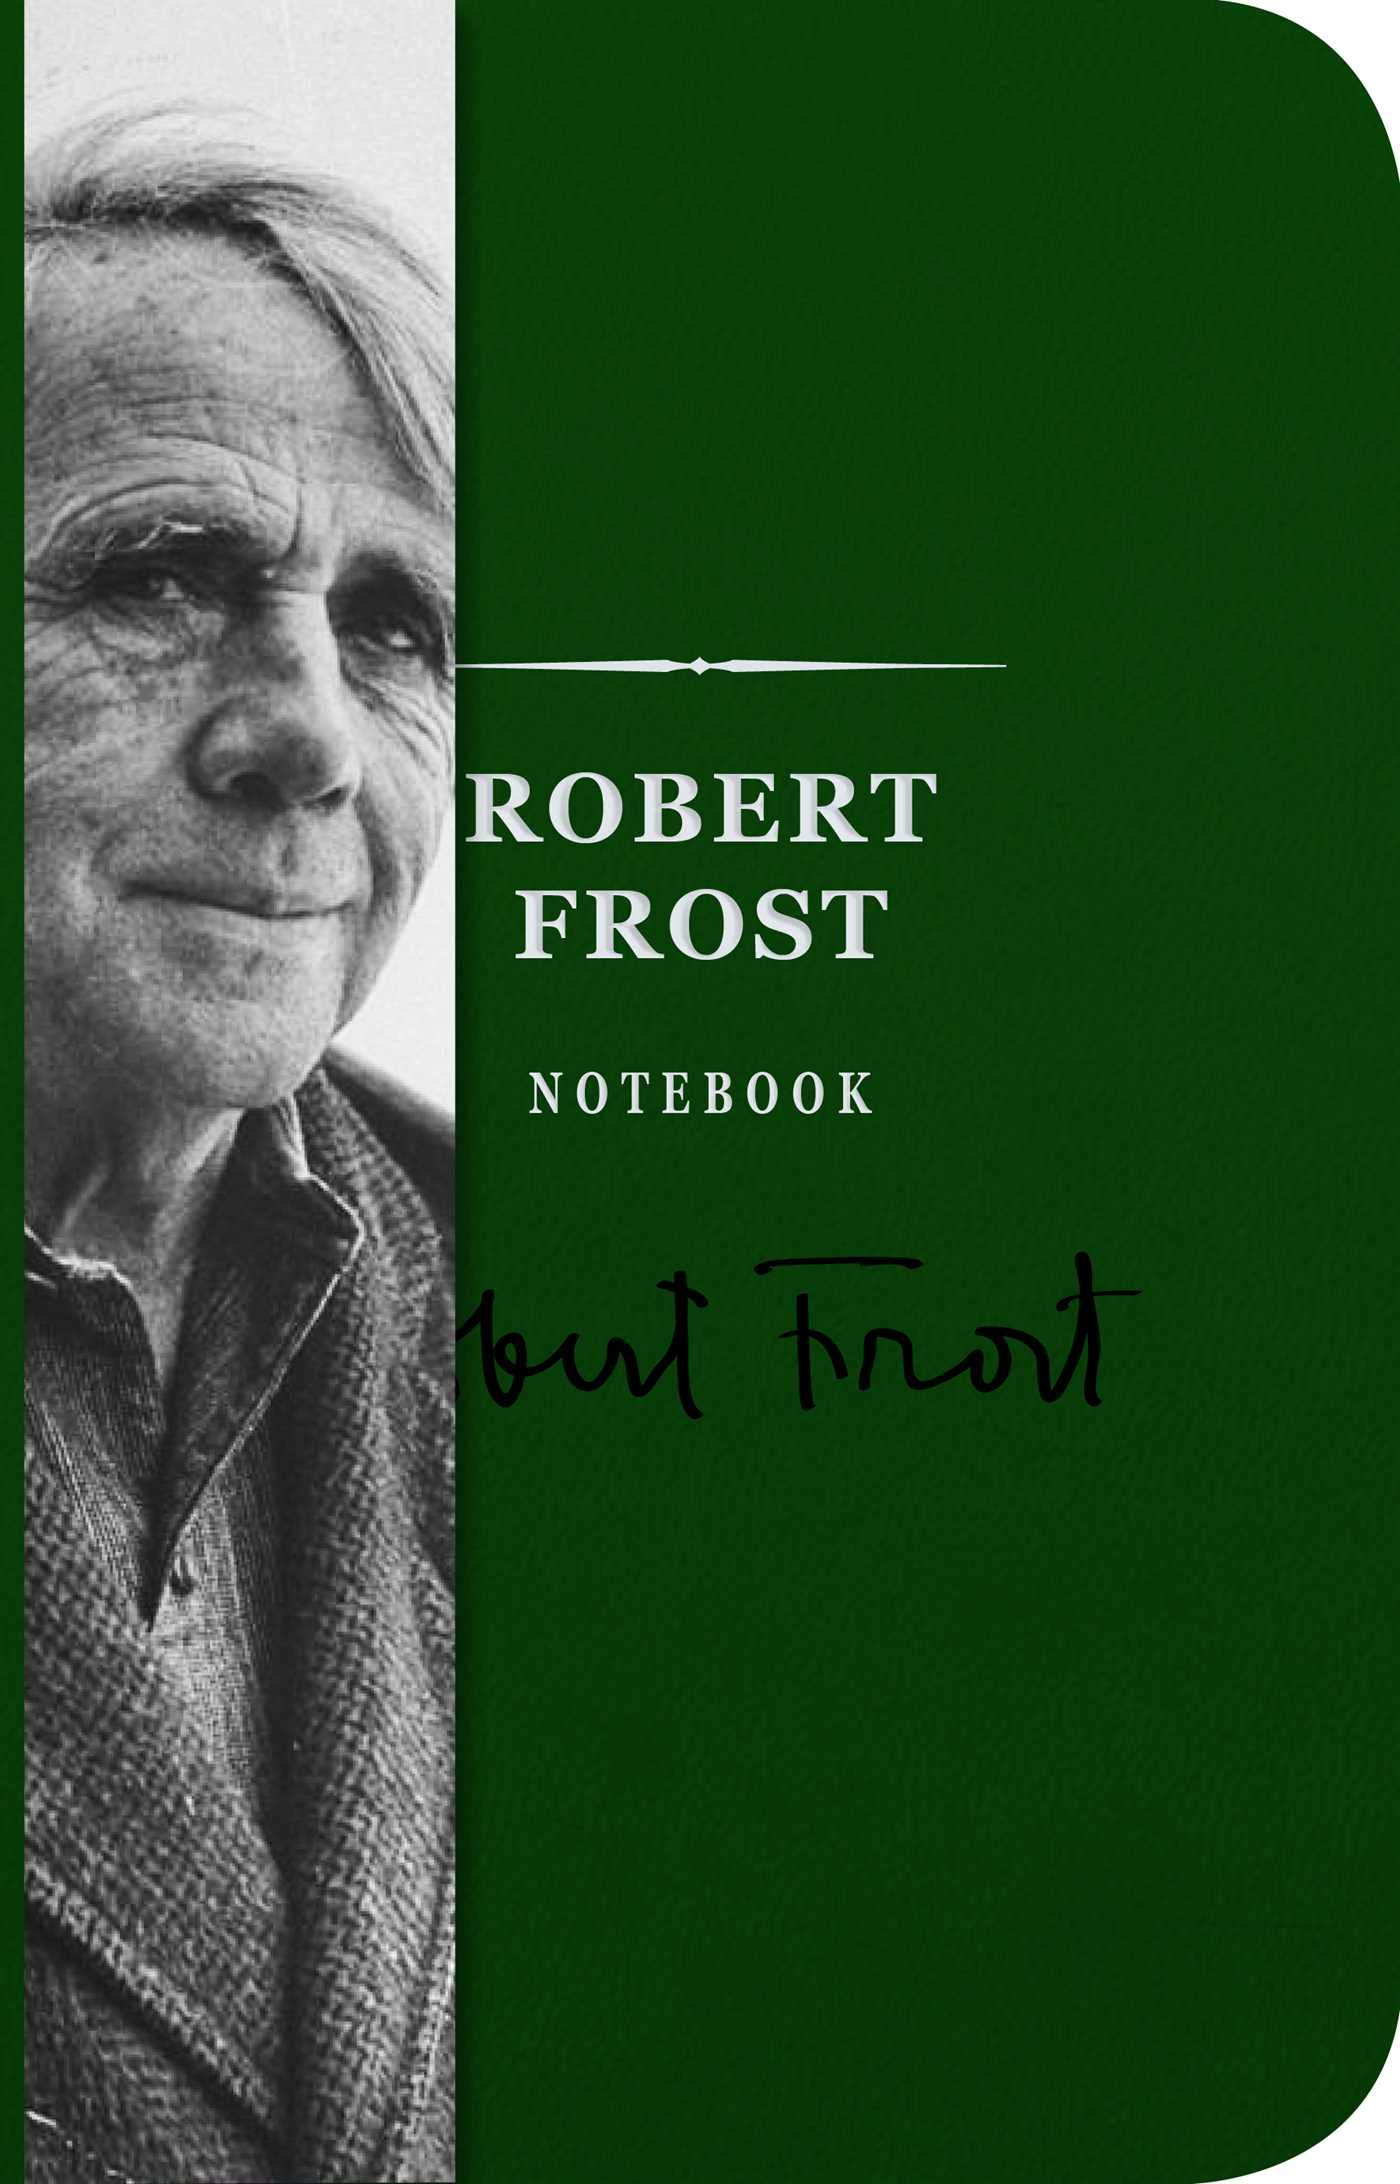 672c36c3ea16 Robert Frost Signature Notebook (The Signature Notebook Series ...